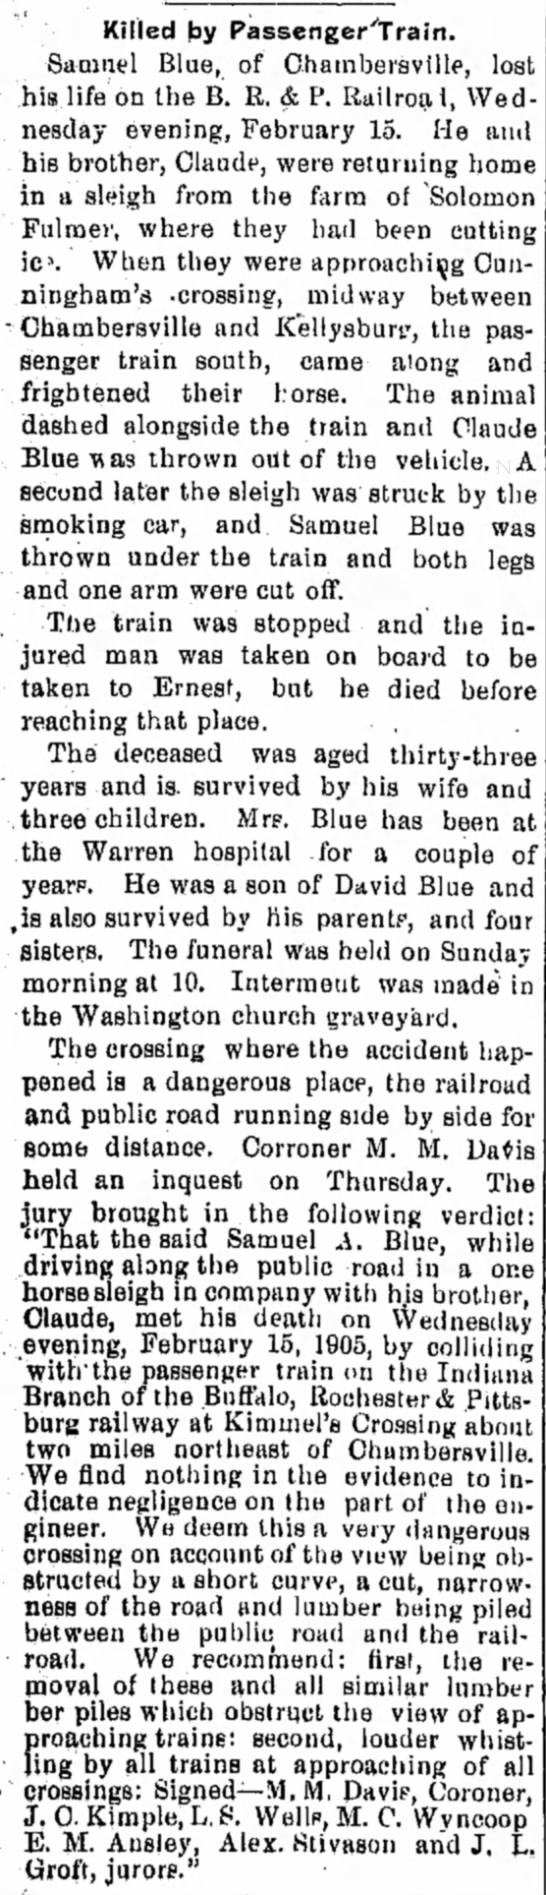 Samuel Blue obit, Indiana Democrat, 22 Feb 1905 -